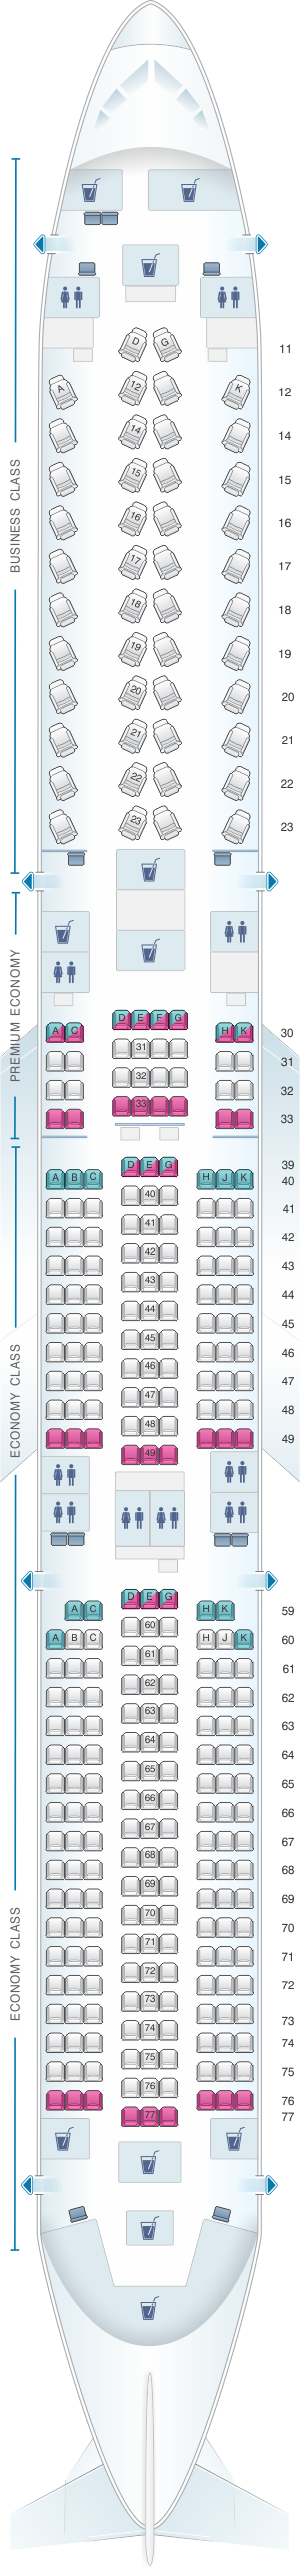 Seat map for Cathay Pacific Airways Airbus A350-1000